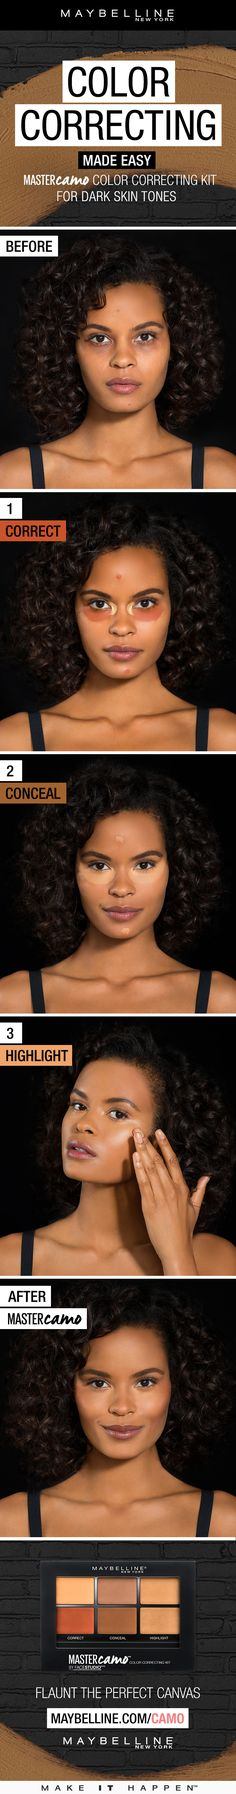 Want to get a flawless, even complexion with 3 easy steps?  Maybelline Master Camo Color Correcting Kit what you're looking for then. Just follow this tutorial for dark skin tones. Use the orange color correcting shades to correct discoloration and dark under eye circles. The concealer shades to even out complexion and the highlighter shades to brighten and highlight your features. Skin is visibly evened out and glowing for a perfect base for any makeup look.